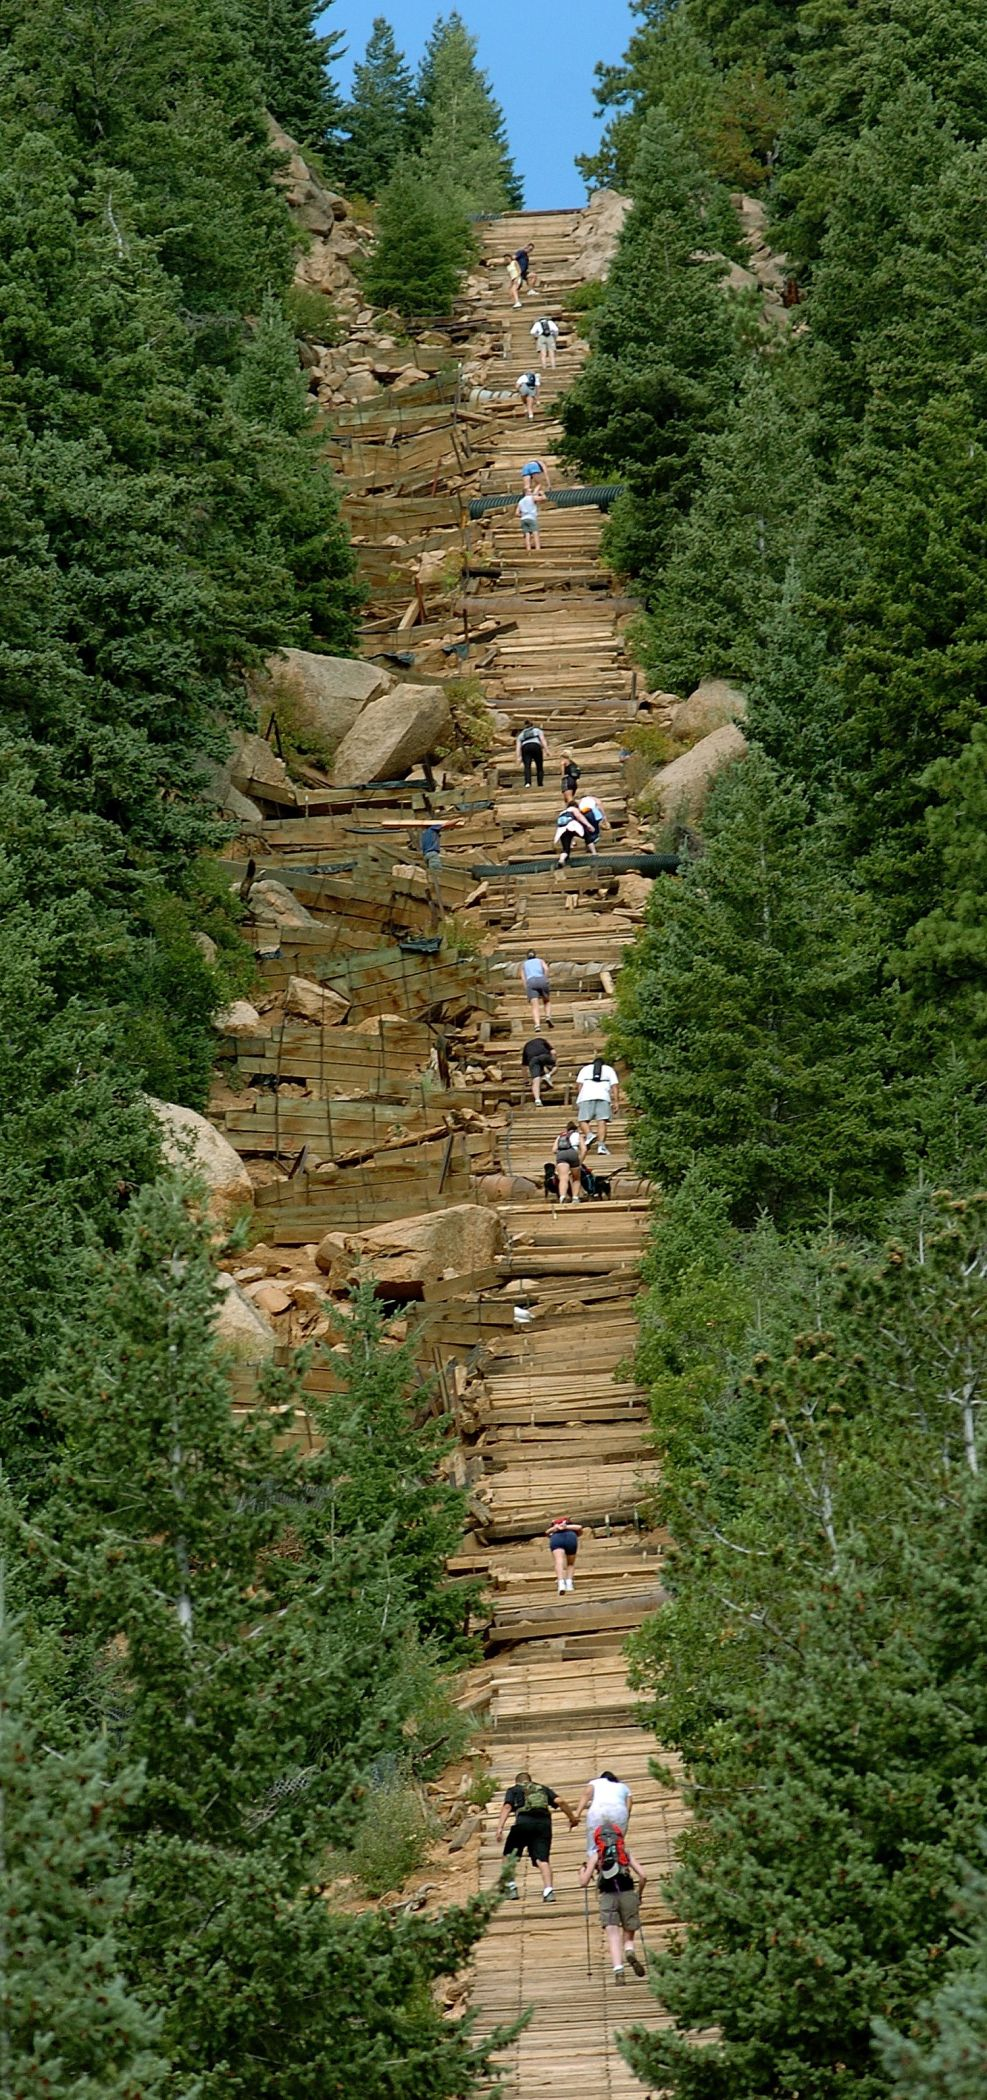 Hikers climb Incline toward the top of Mount Manitou in Manitou Springs Saturday Sept. 10, 2005. The hike has an average grade of 41 percent with the steepest being 68 percent. Photo by Christian Murdock/The Gazette